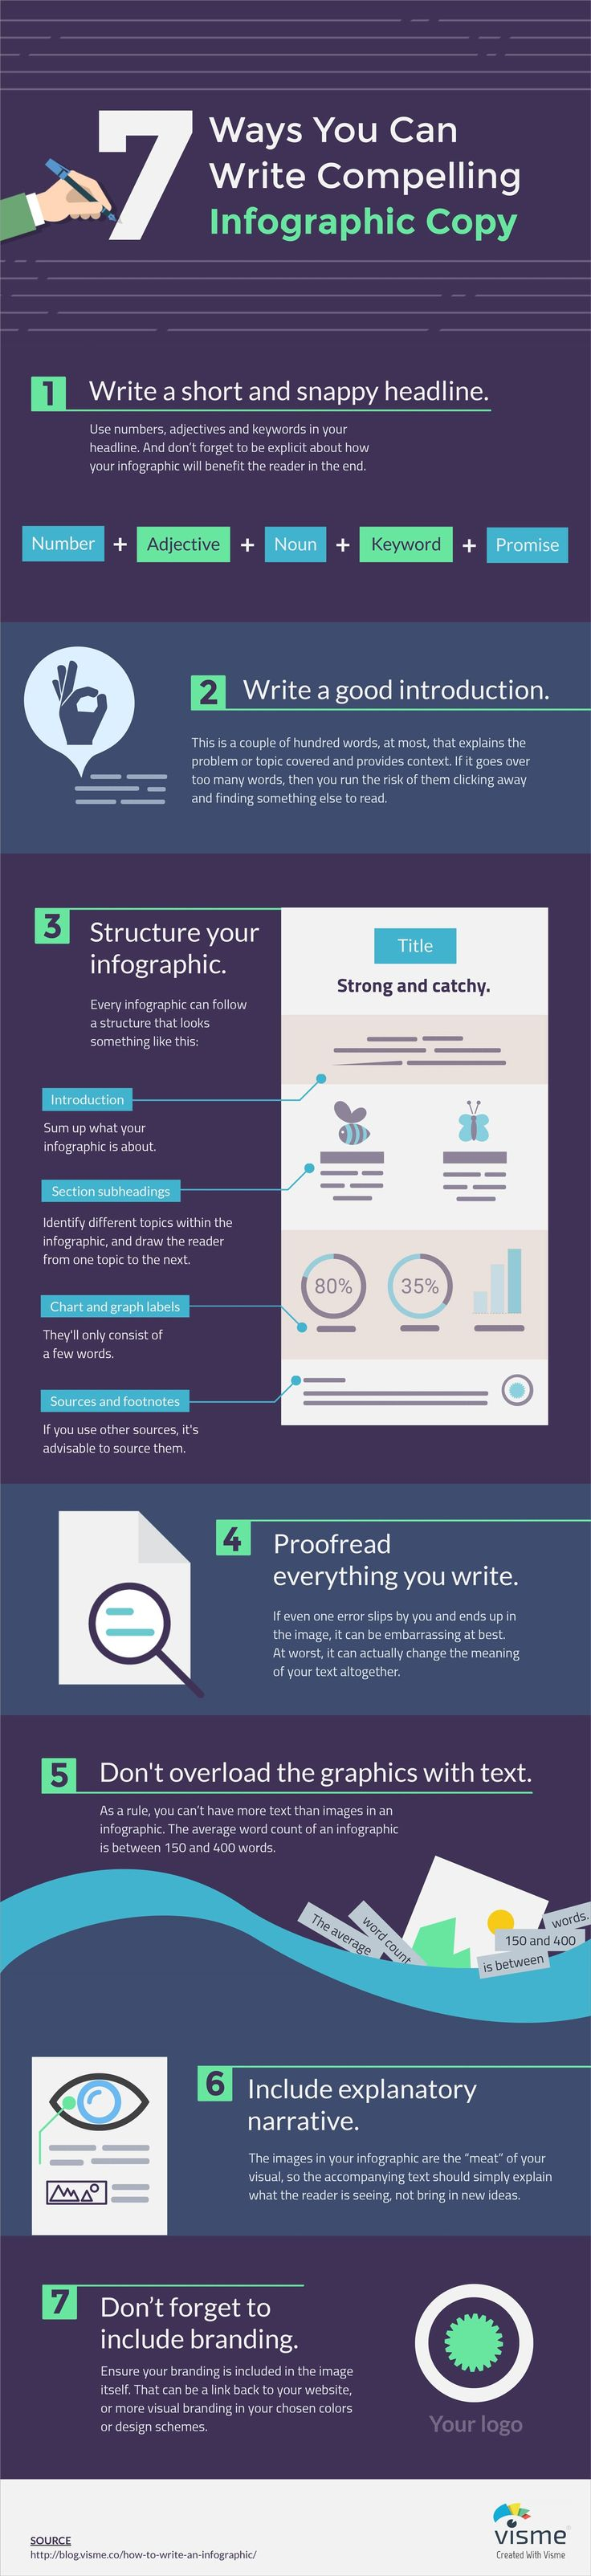 7 Ways You Can Write Compelling Infographic Copy - #Infographic